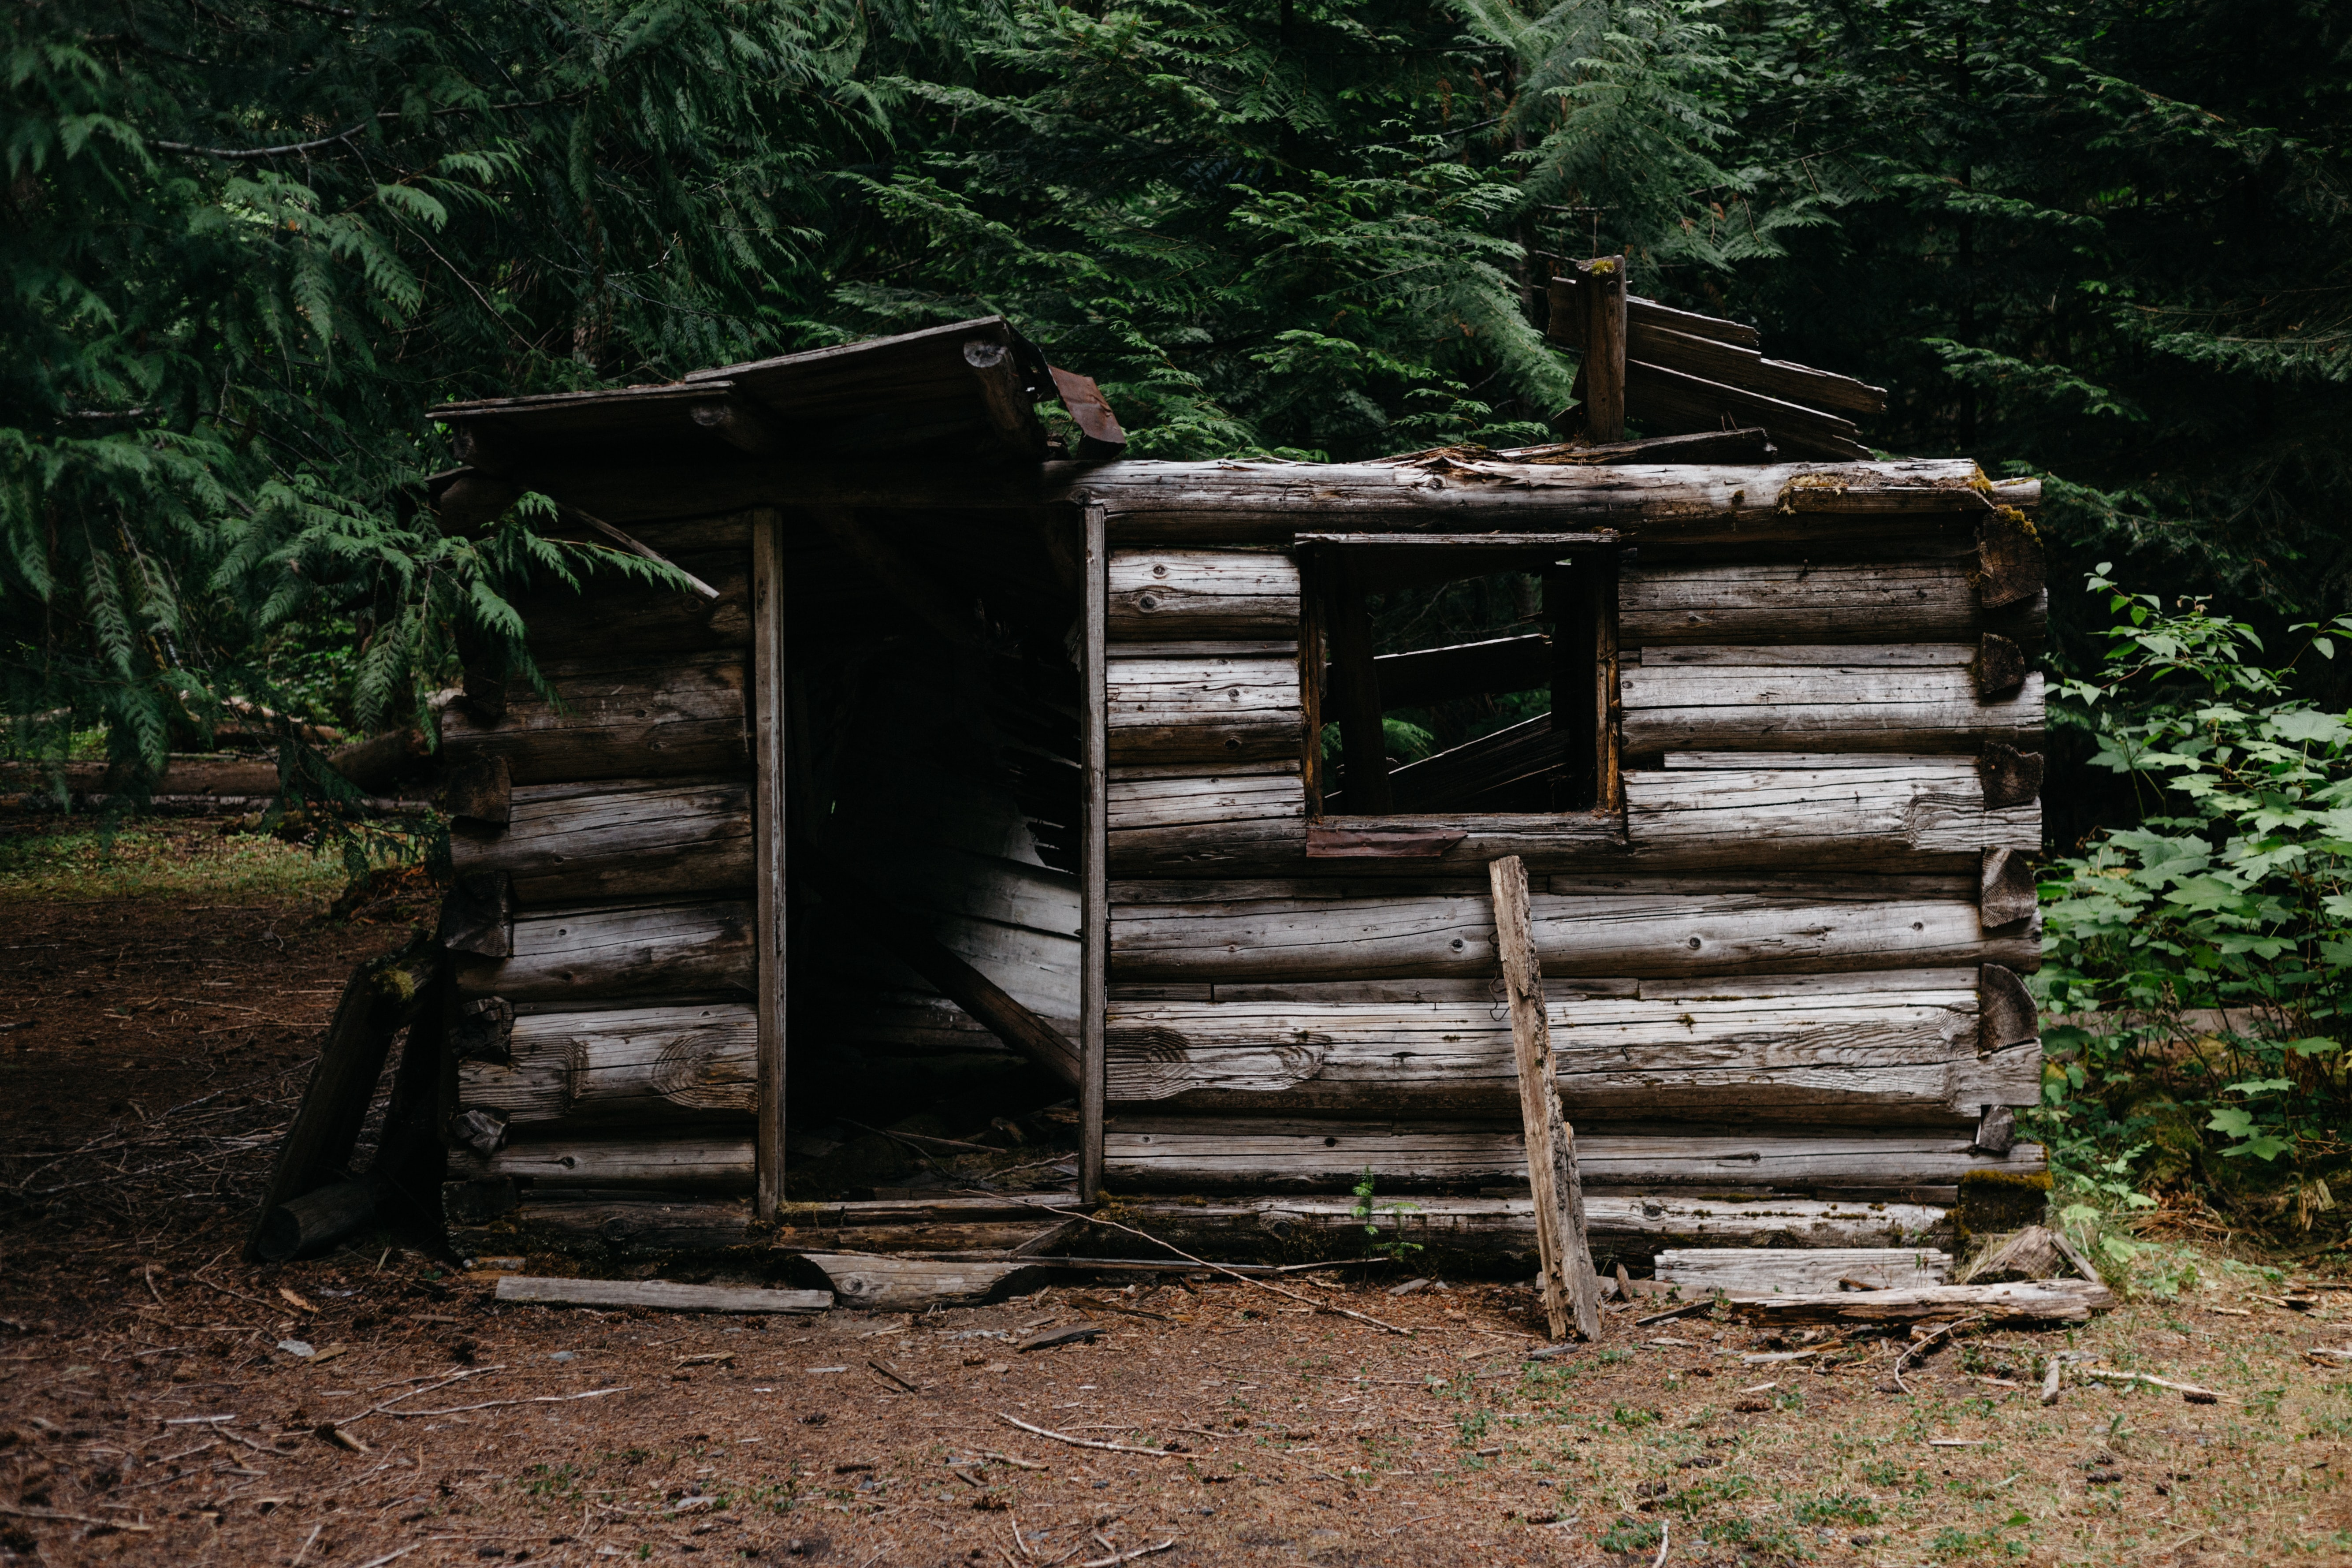 A wood cabin that is falling apart in the forest in Cascade Range